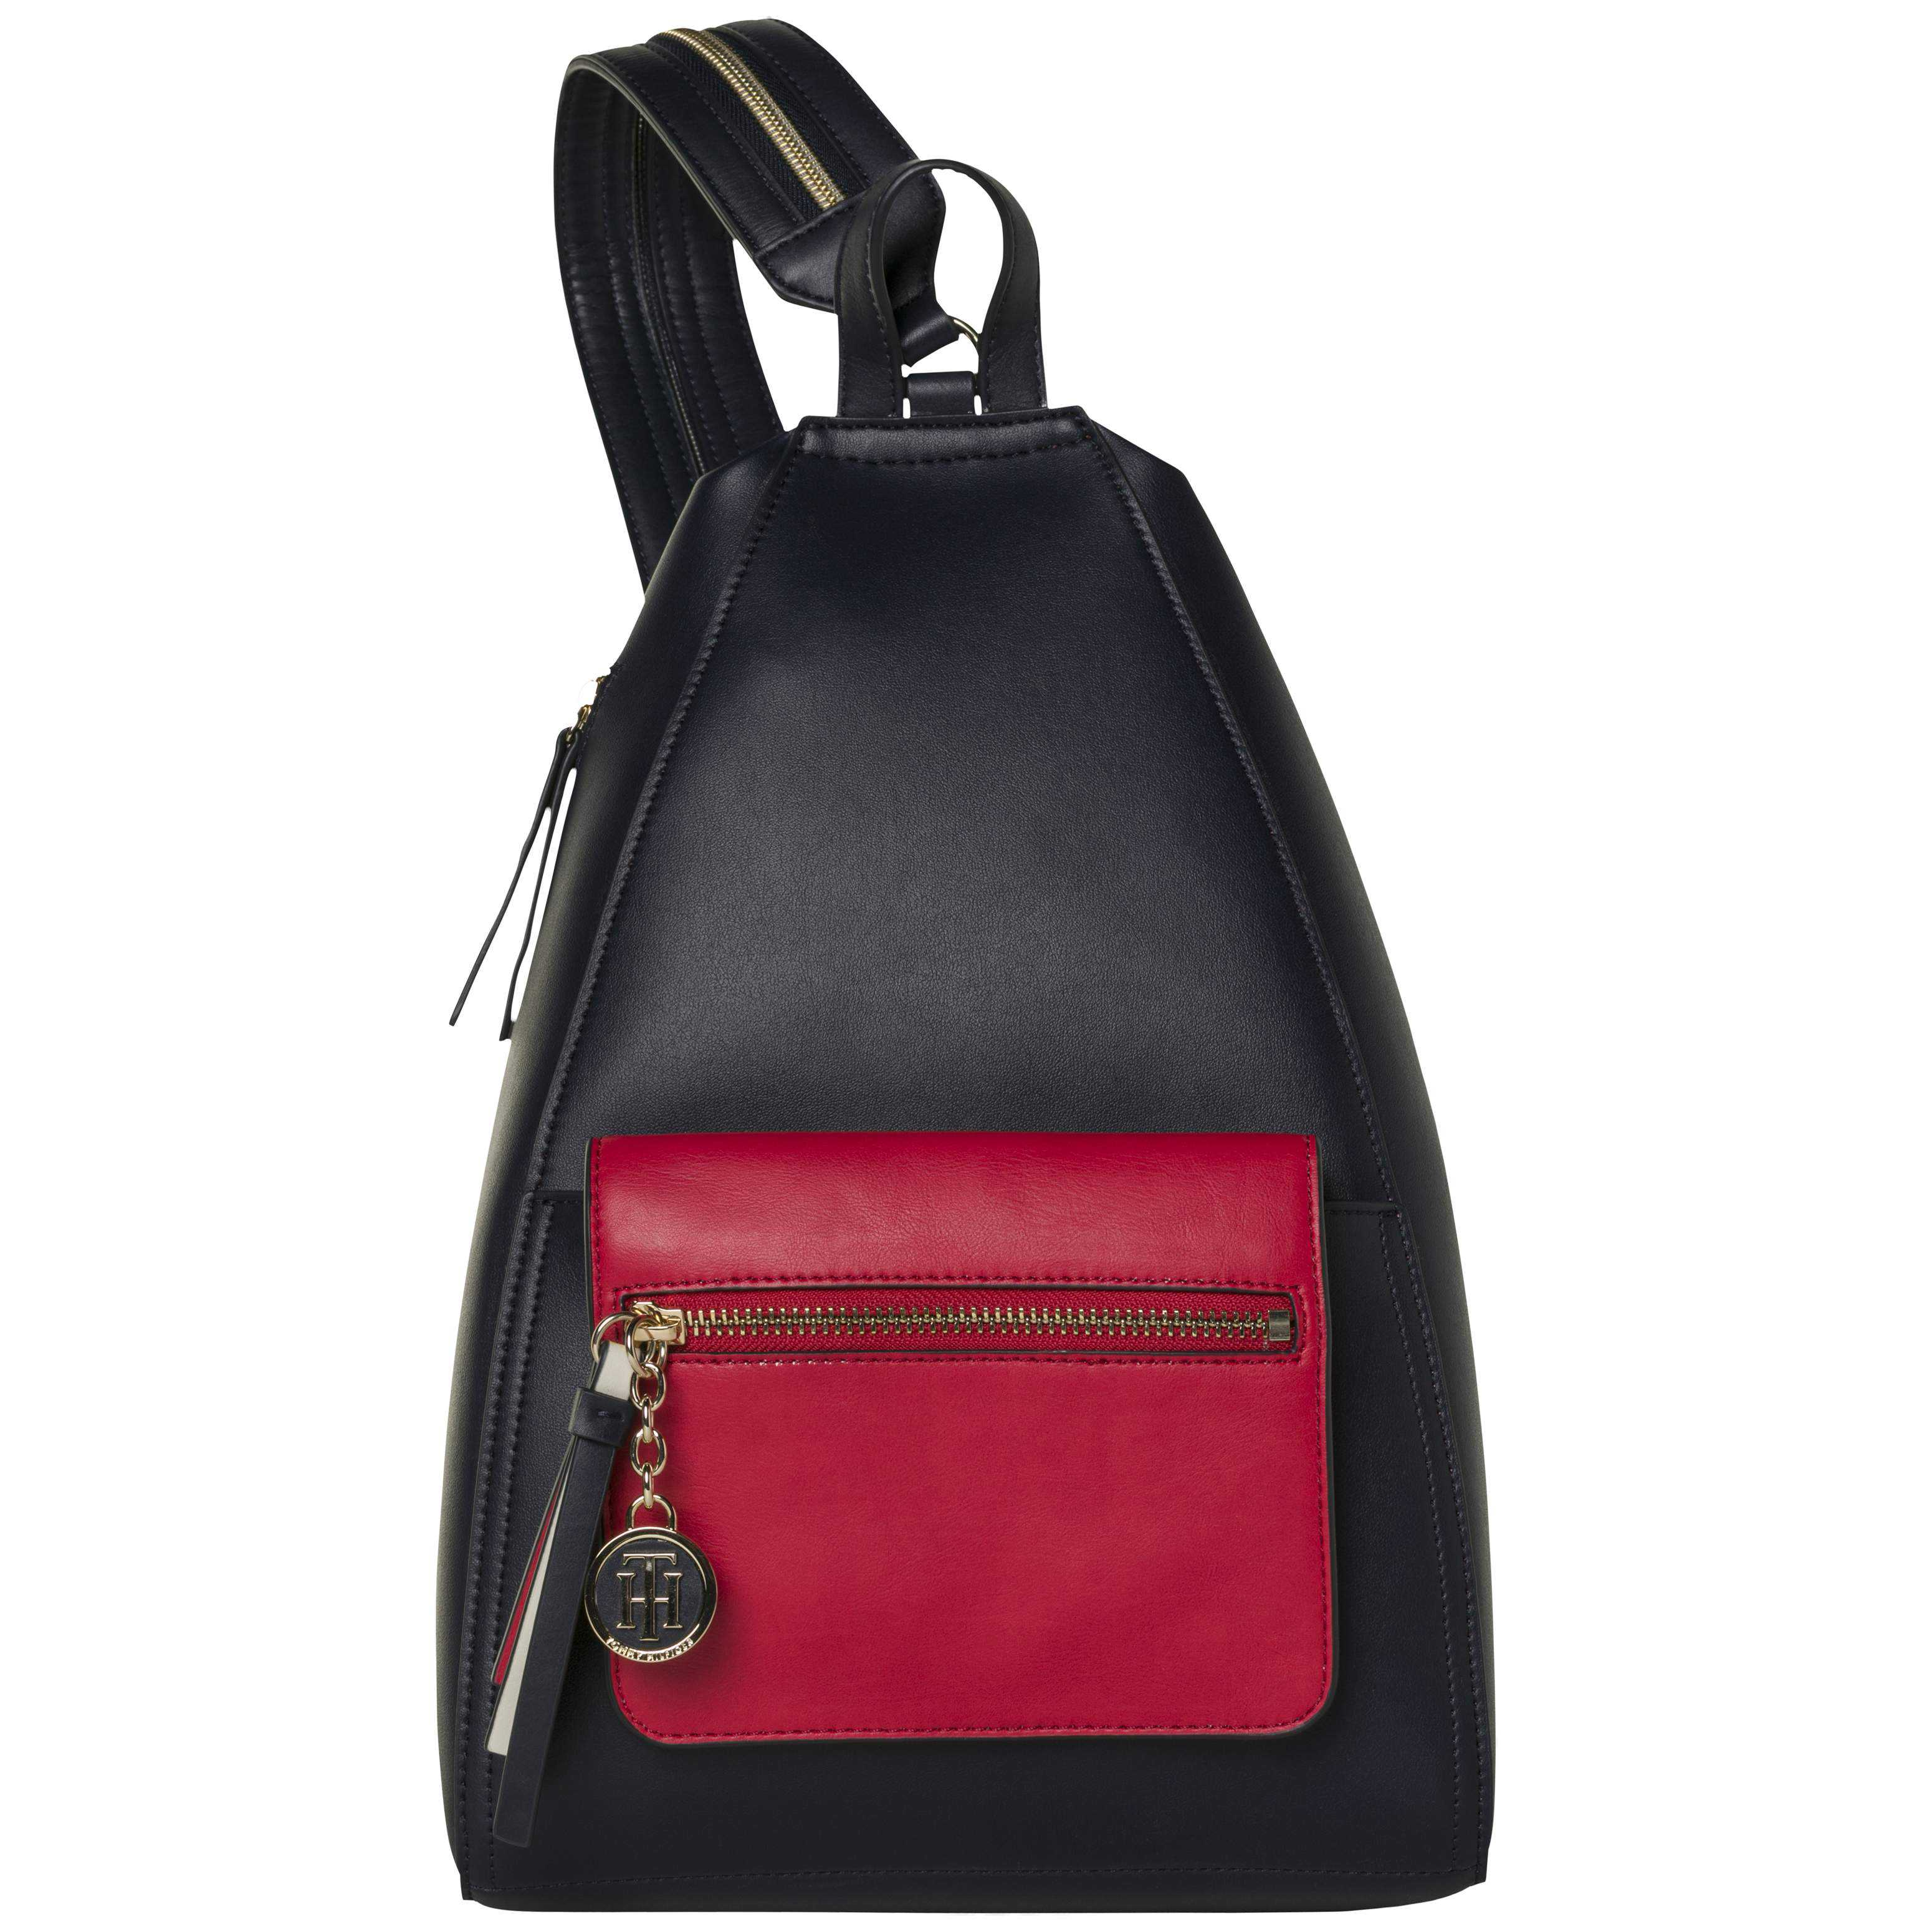 Tommy Hilfiger Batoh 4323 Love Tommy 902 d588d07f7a4